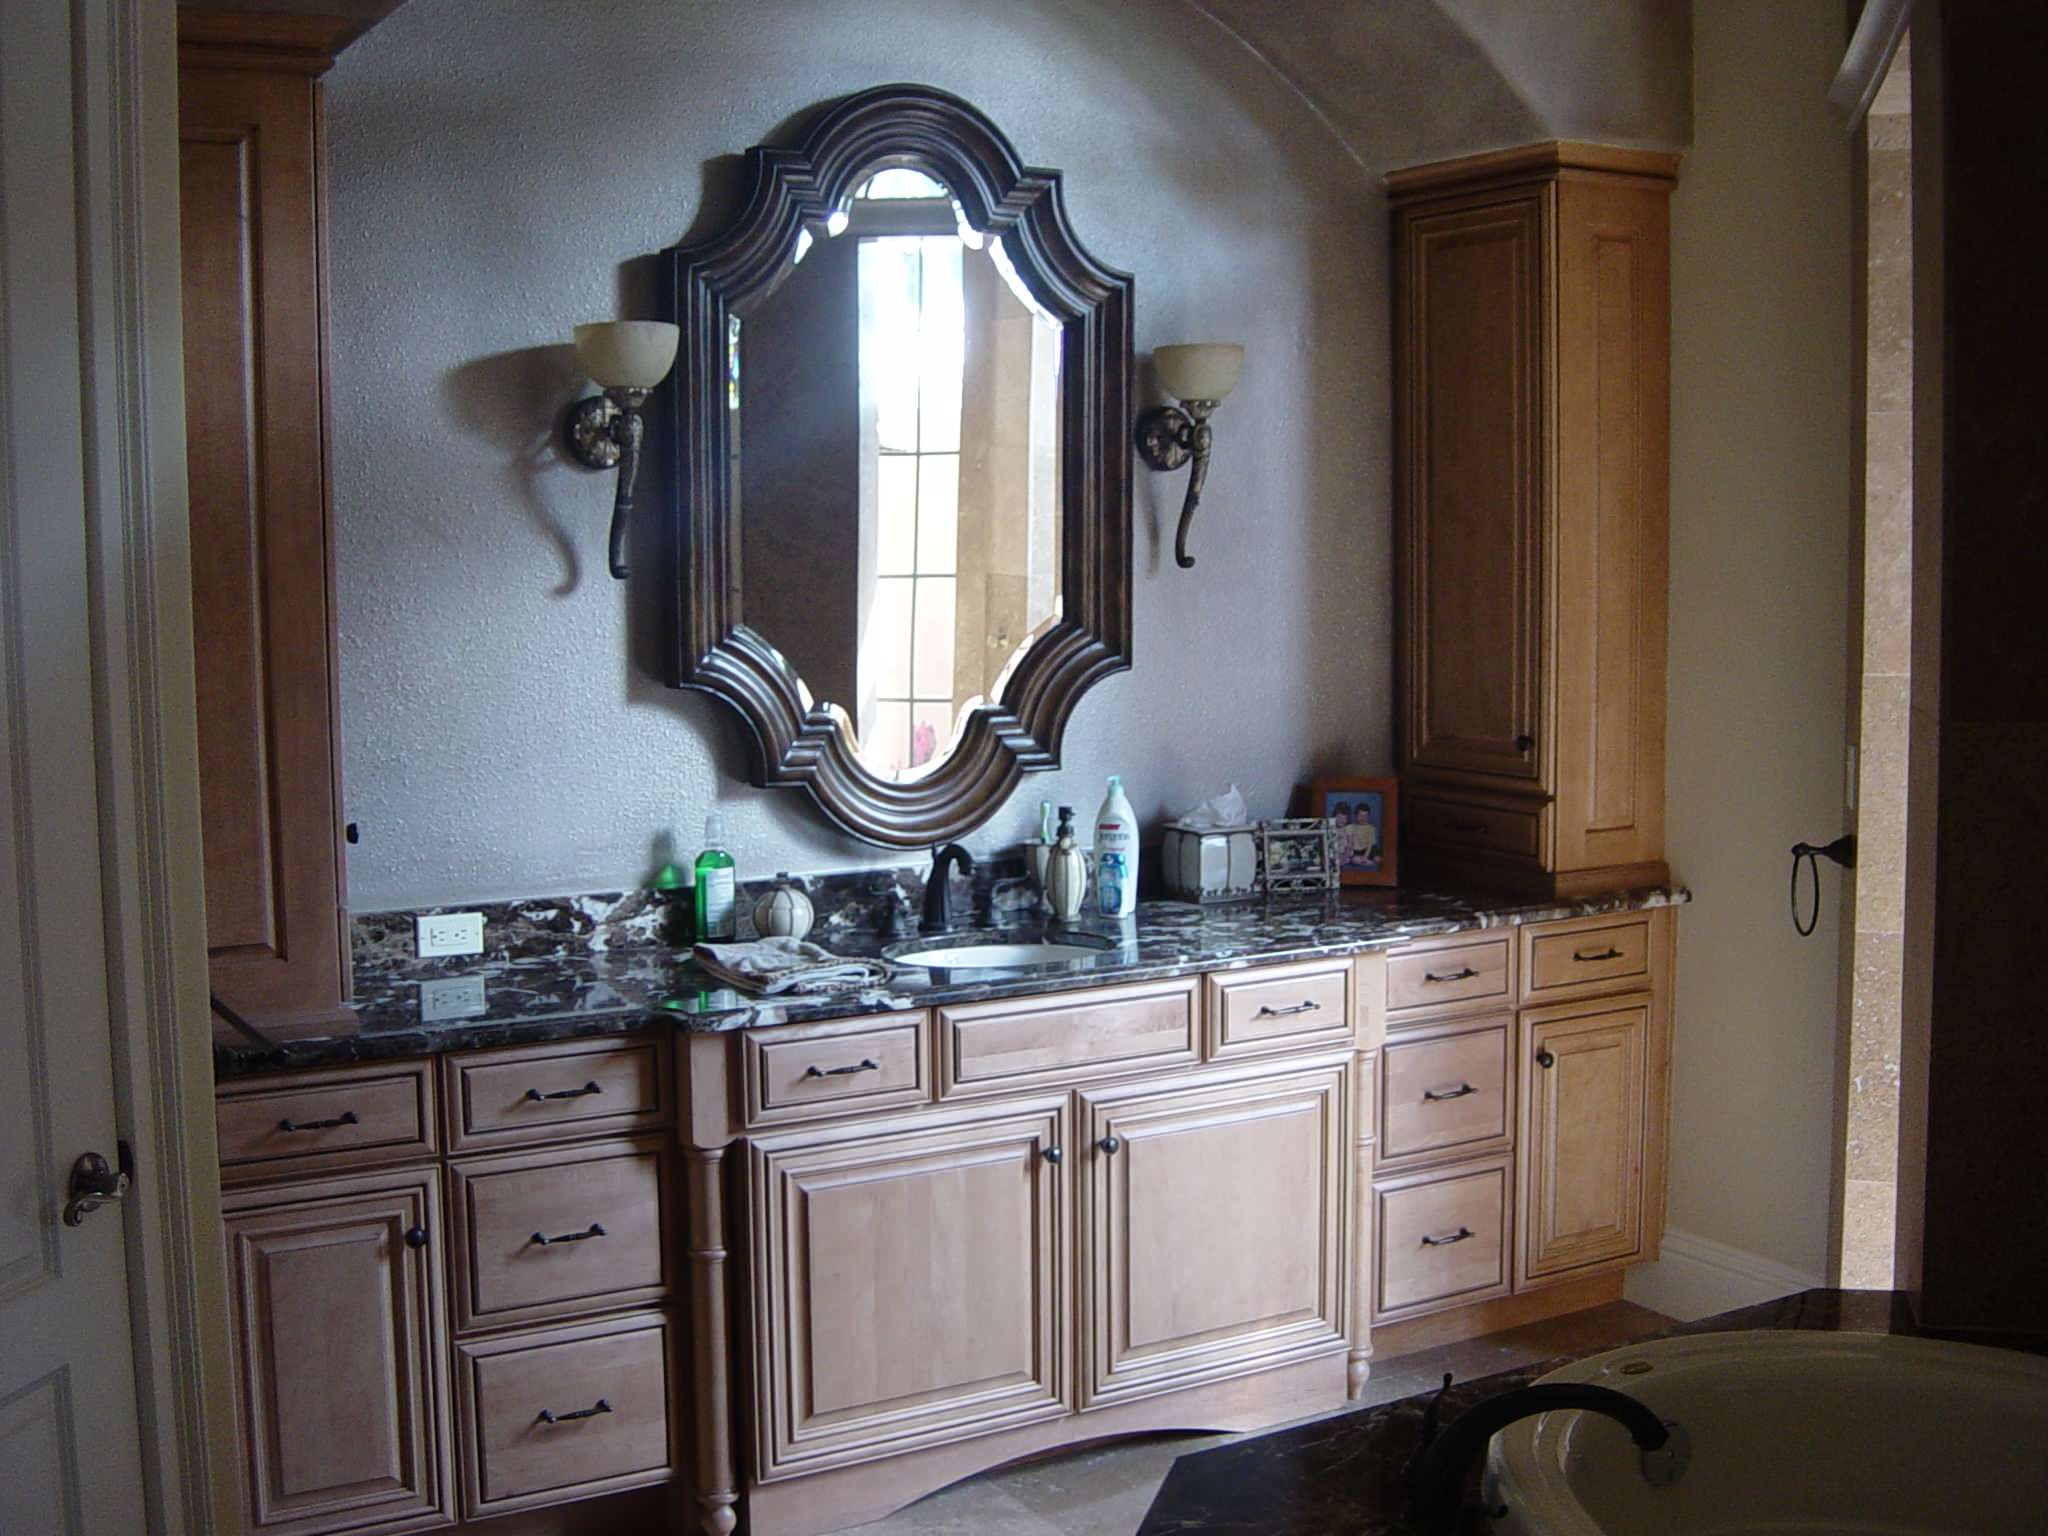 Sophisticated Cabinetry